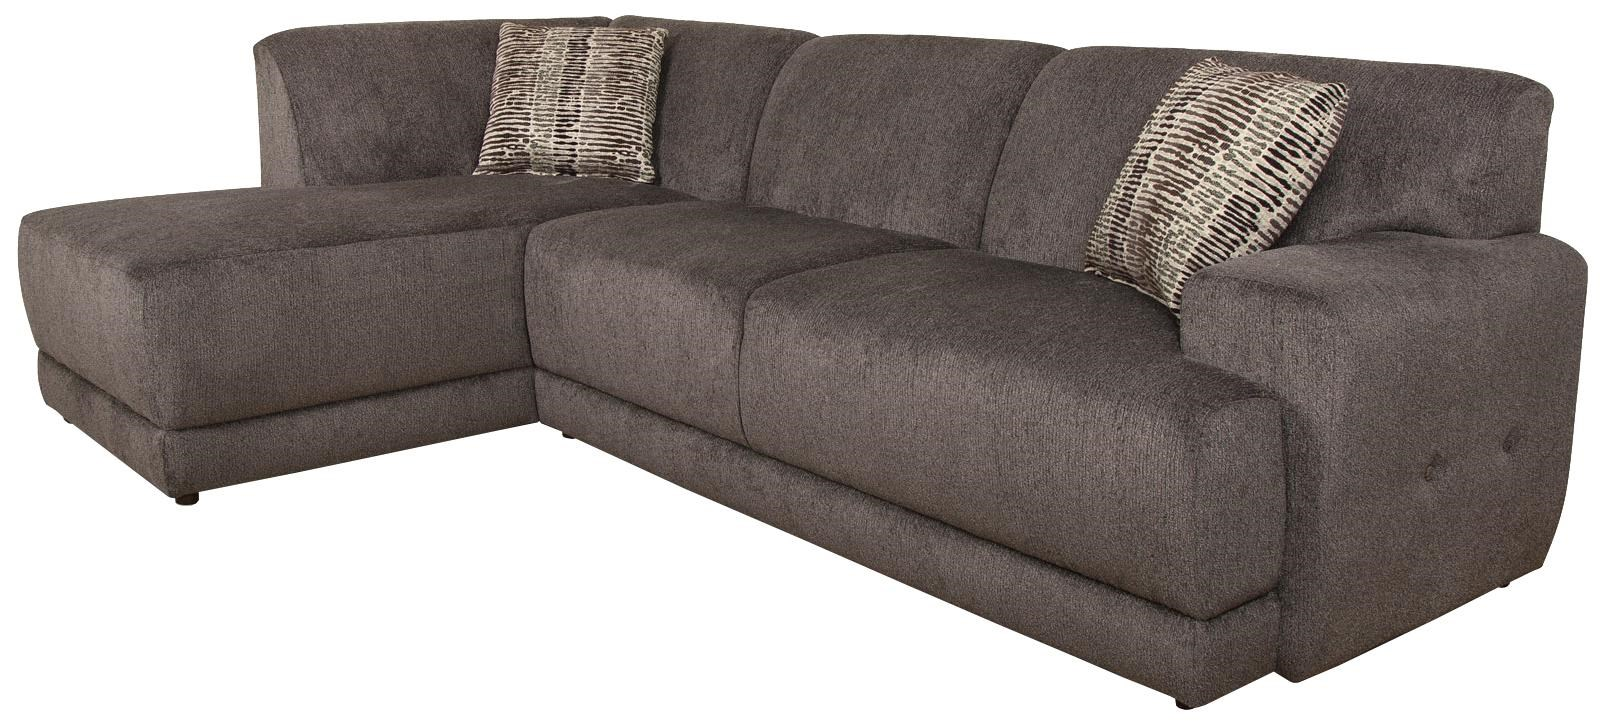 England Cole Contemporary Sectional Sofa with Left Facing  : products2Fengland2Fcolor2Fcole2028802880 062B23 b0jpgscalebothampwidth500ampheight500ampfsharpen25ampdown from www.godbyhomefurnishings.com size 500 x 500 jpeg 25kB